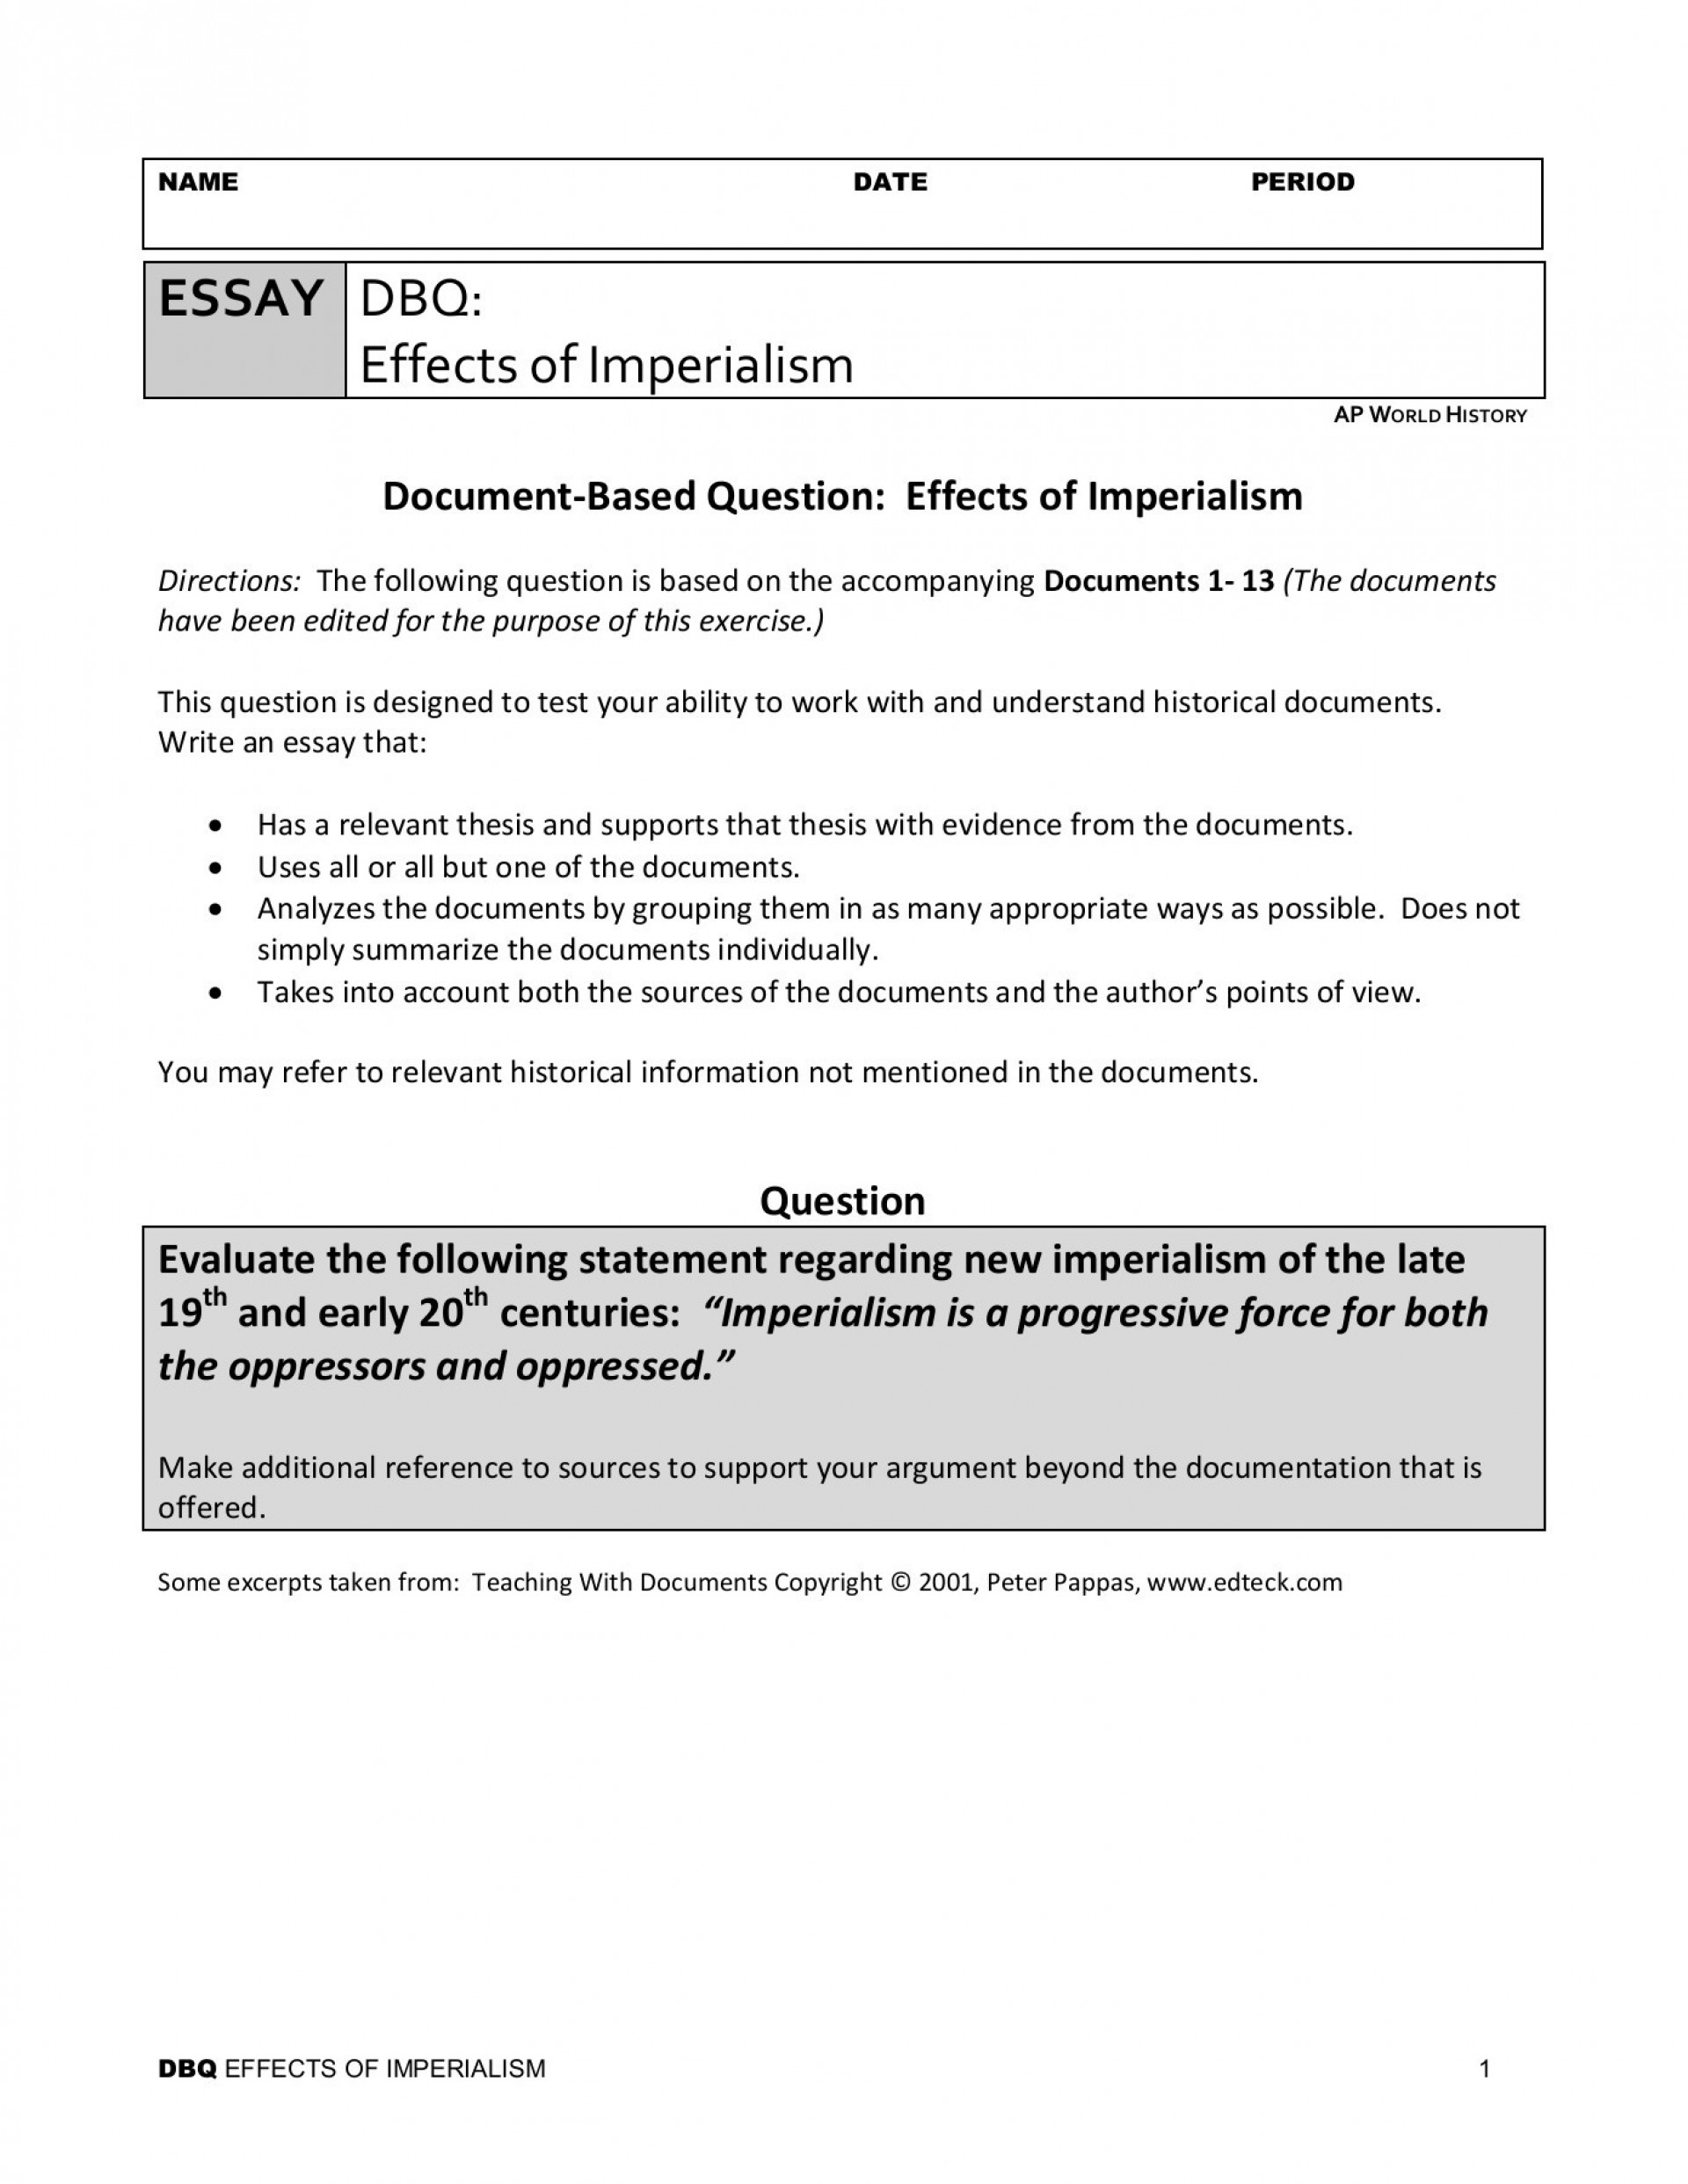 005 Imperialism Essay Example Awful Hook Topics Thesis Statement 1920